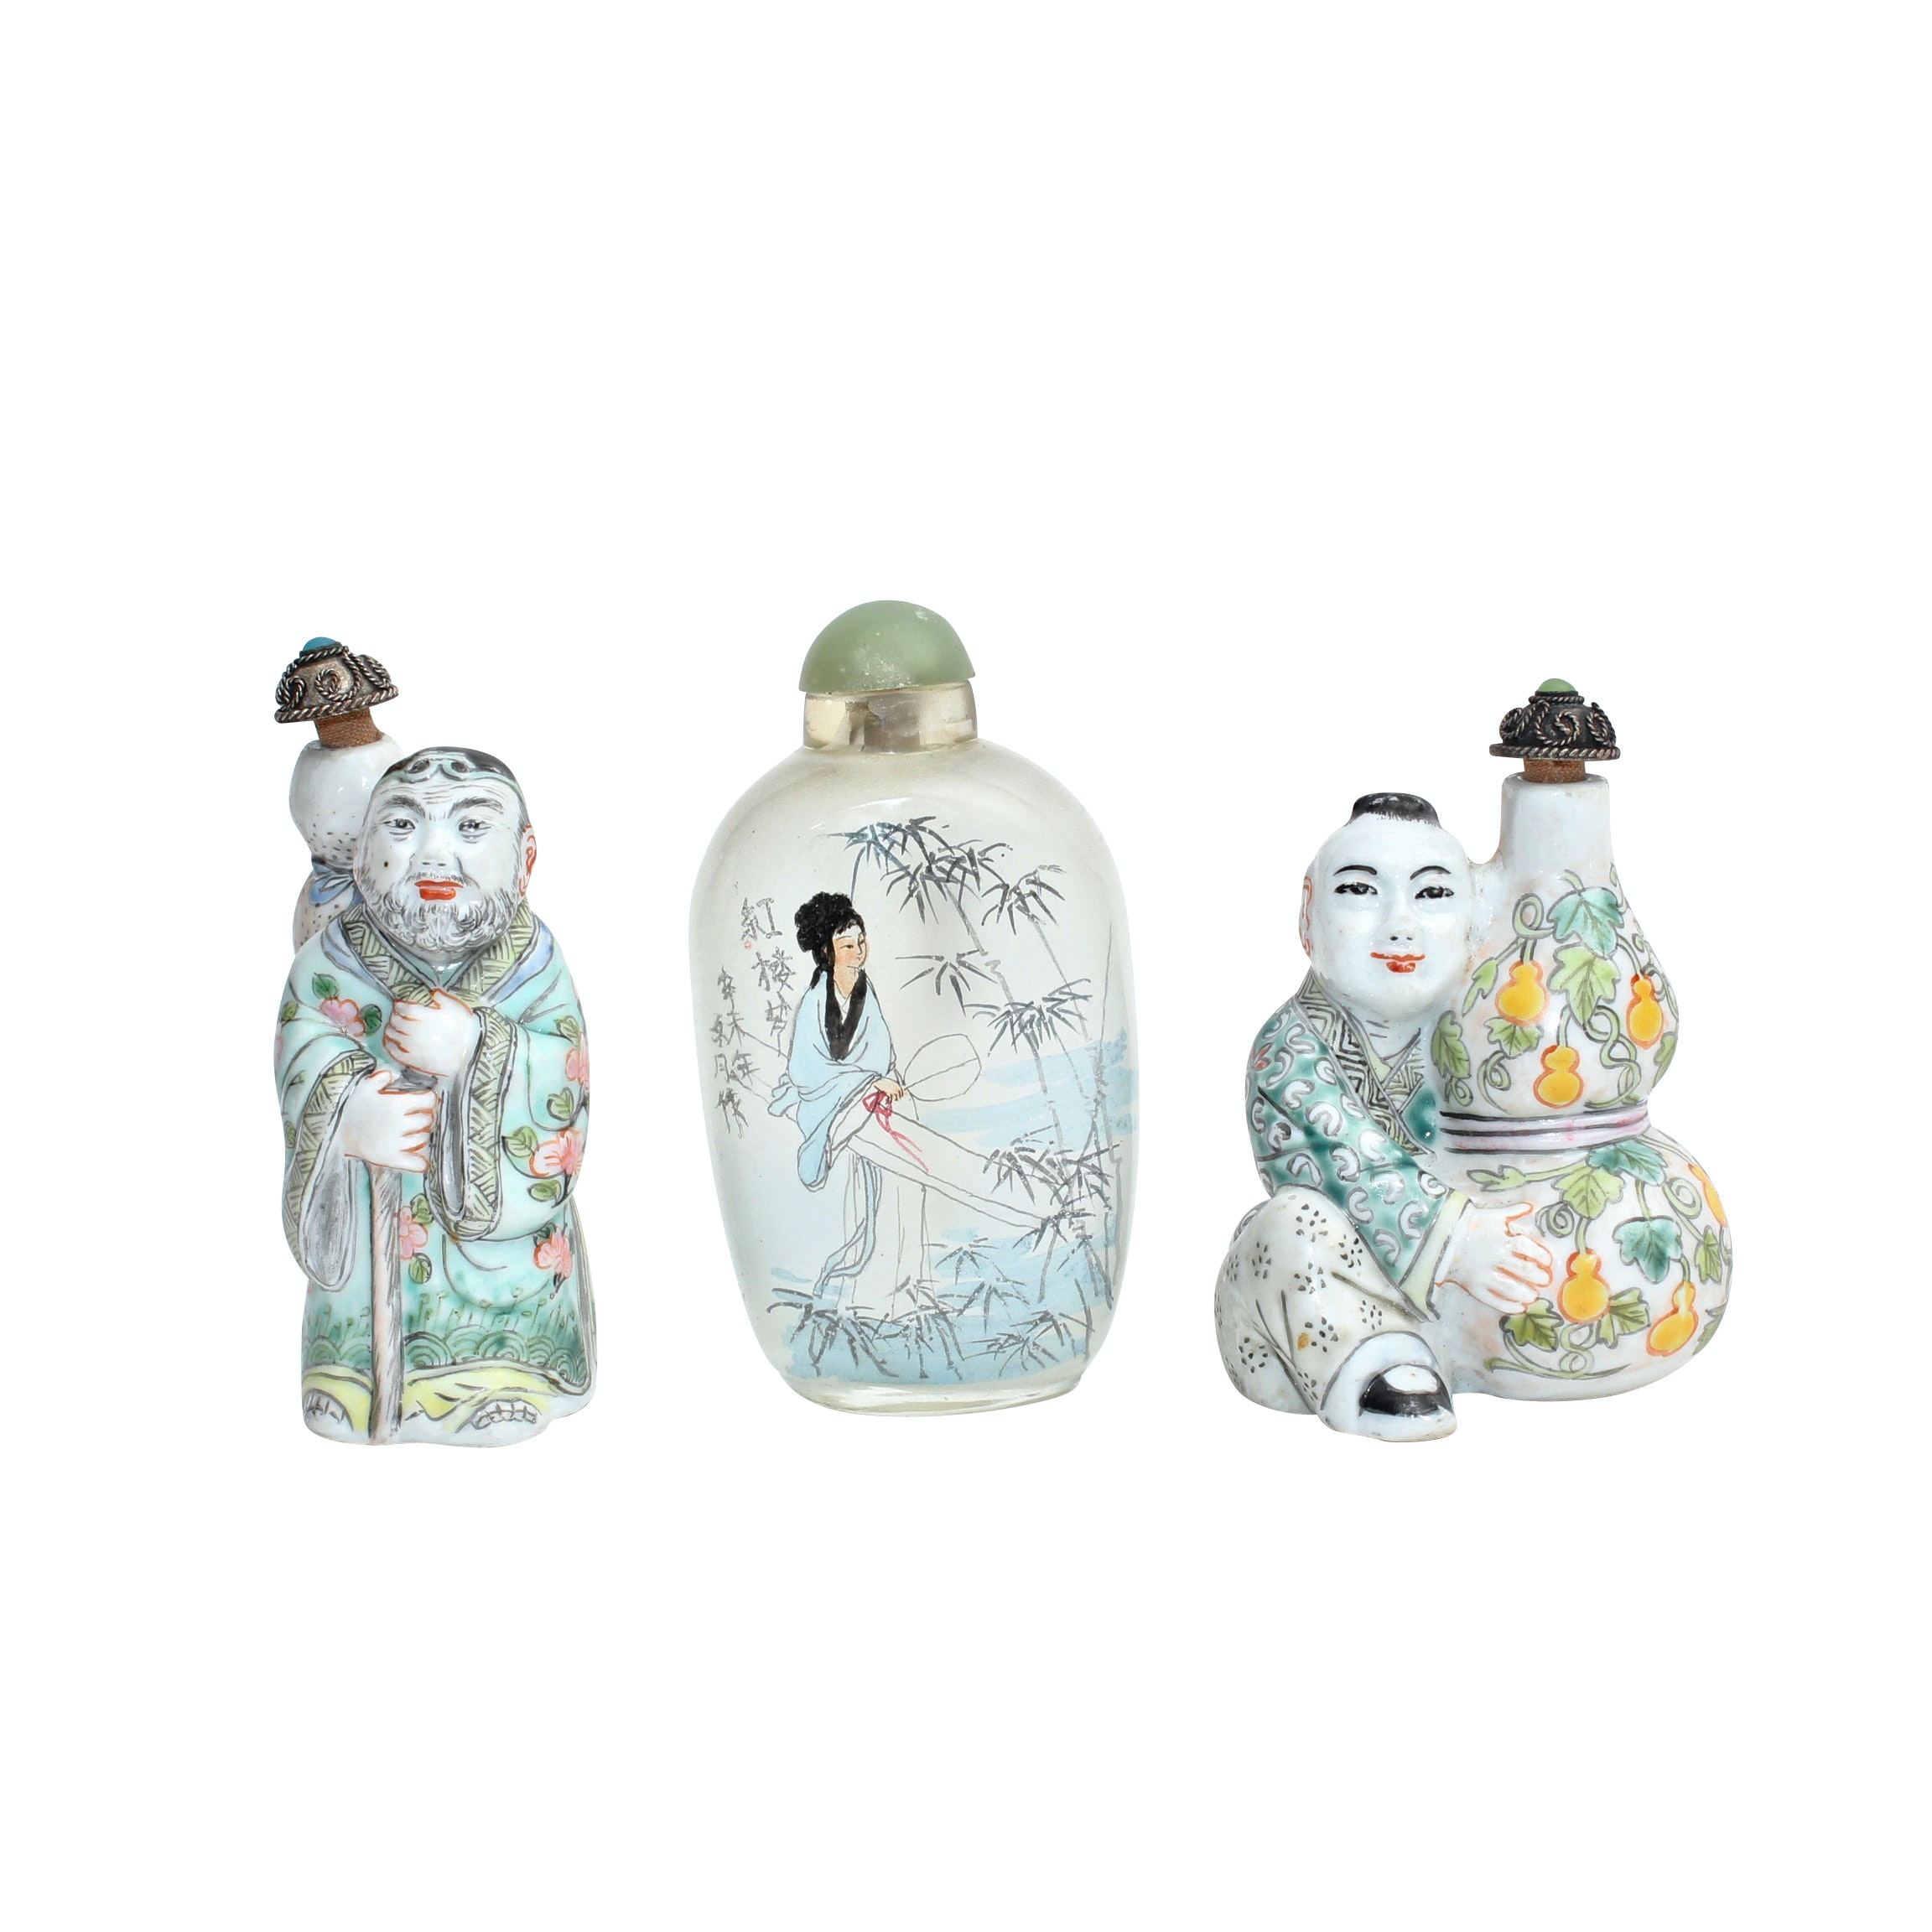 Vintage Chinese Glass and Porcelain Snuff Bottles